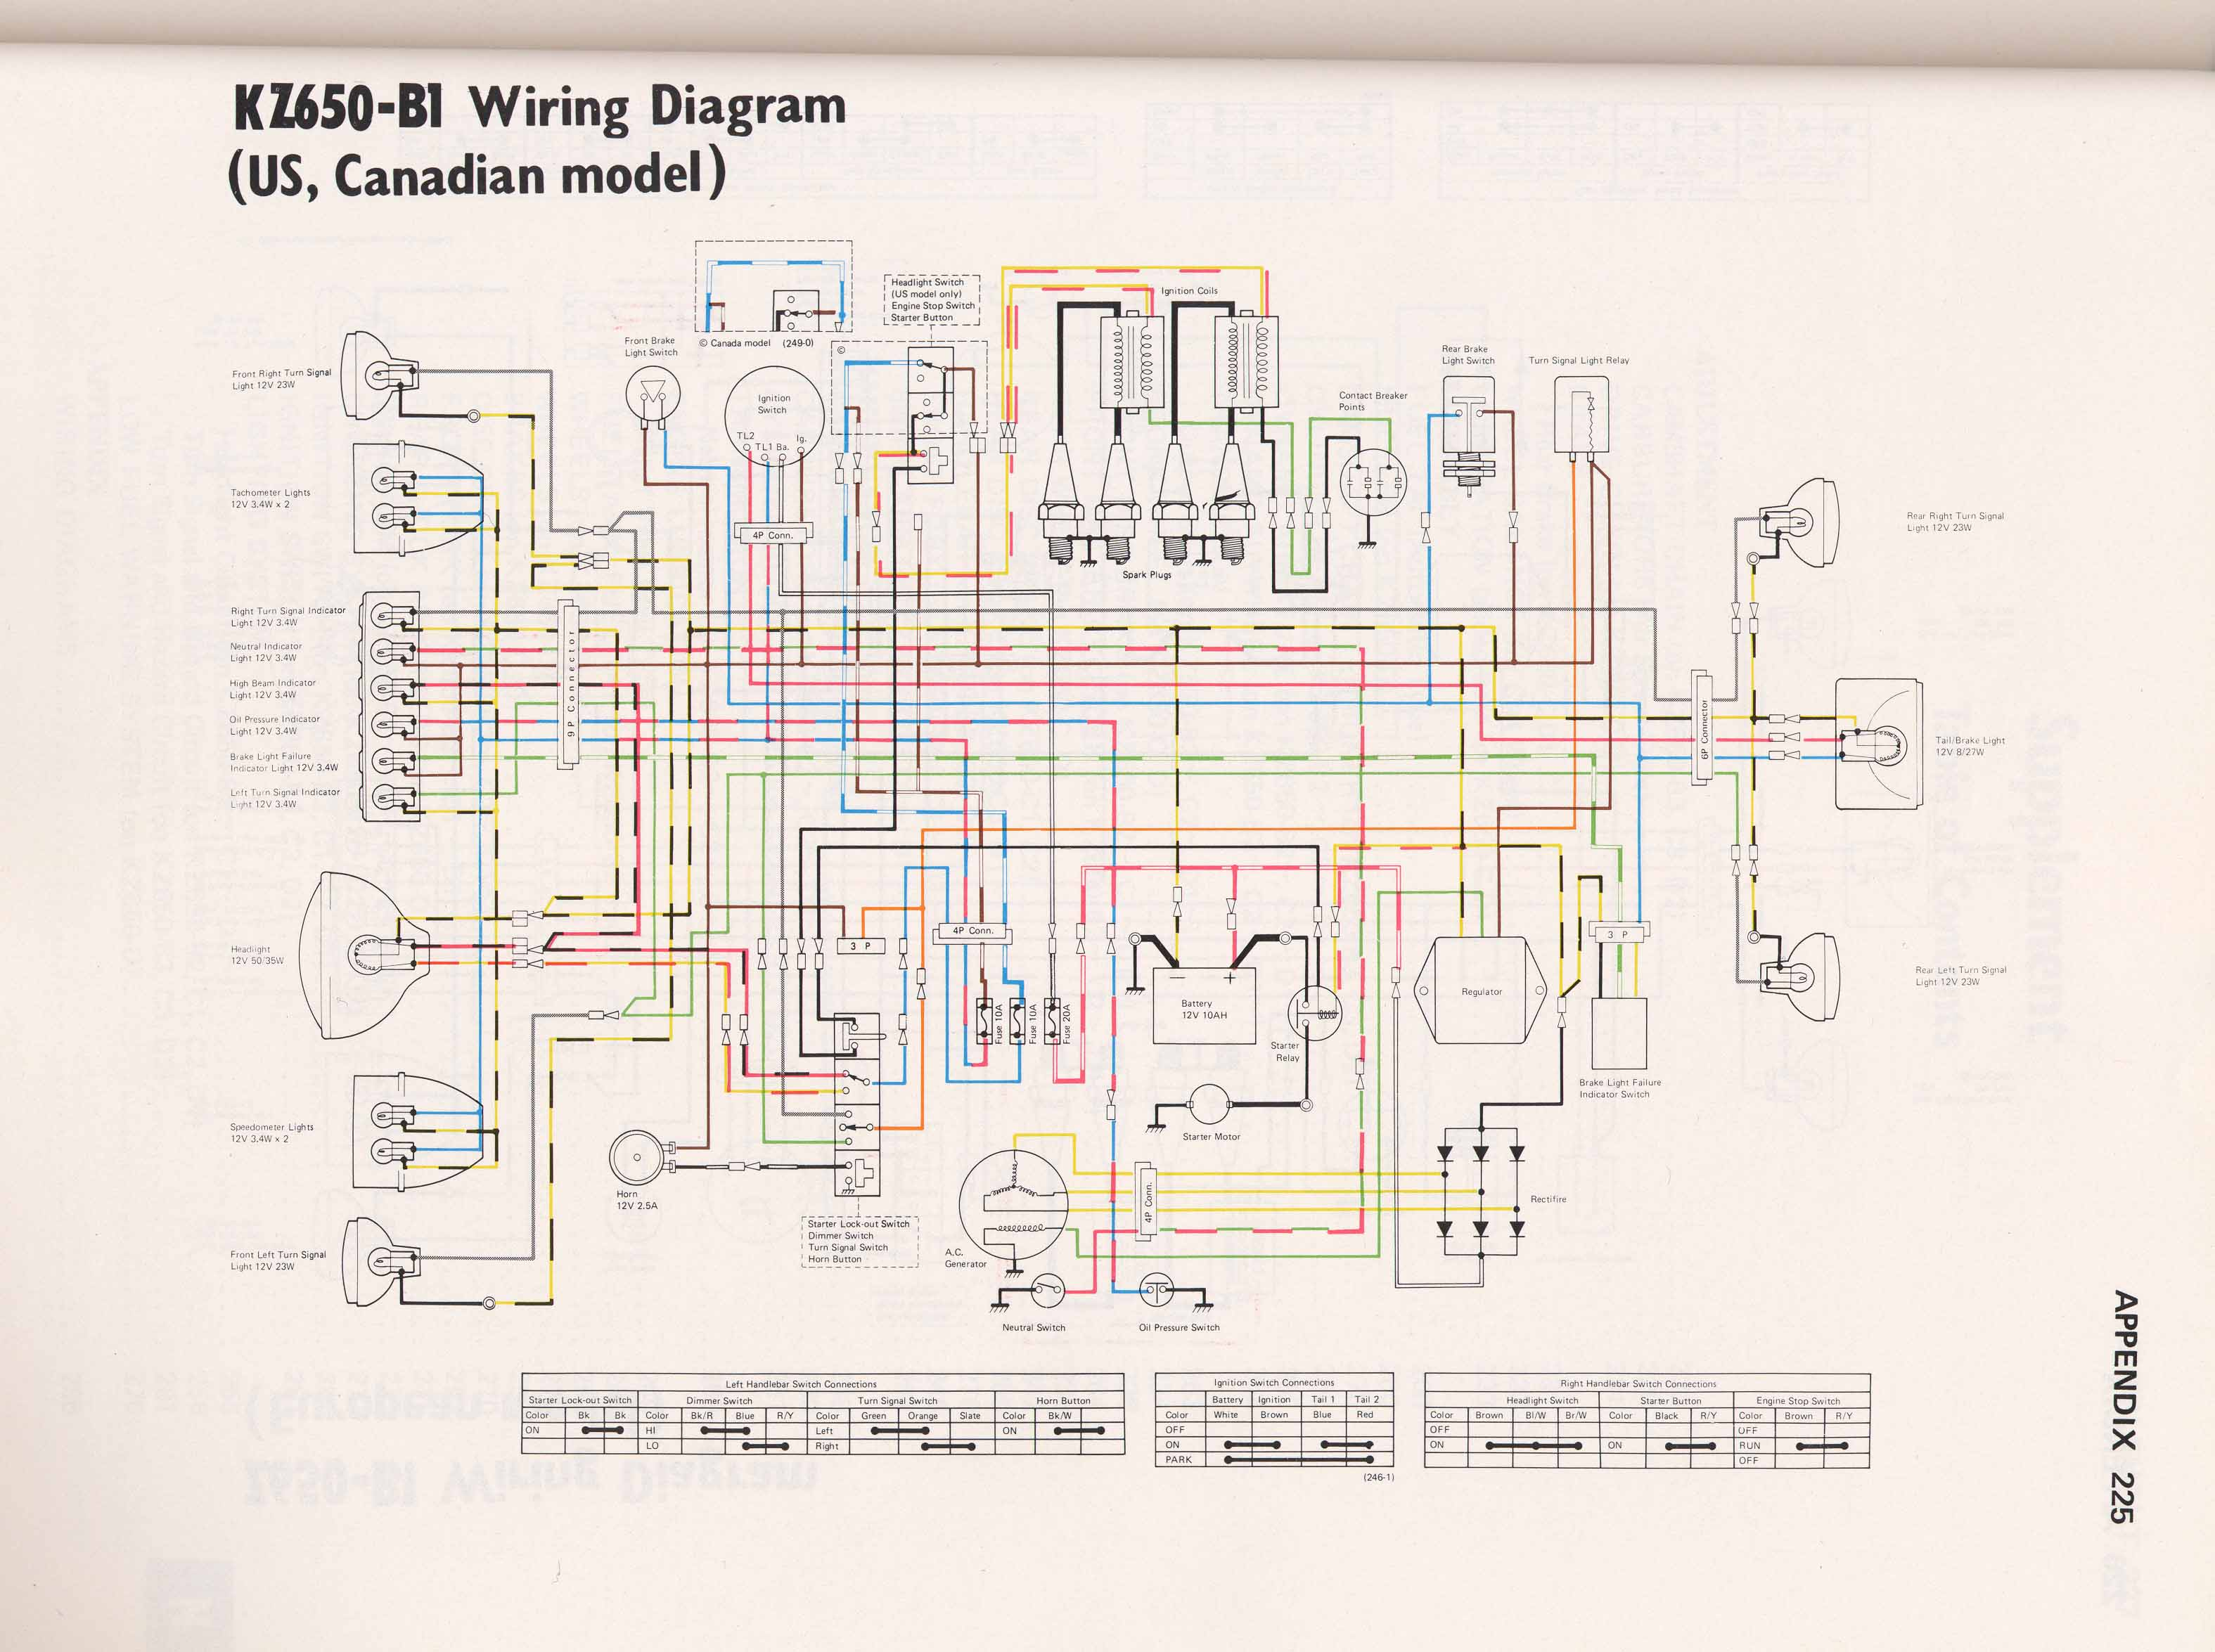 Kawasaki Z650 Kz650 Colour Wiring Loom Diagrams - Wiring ... on